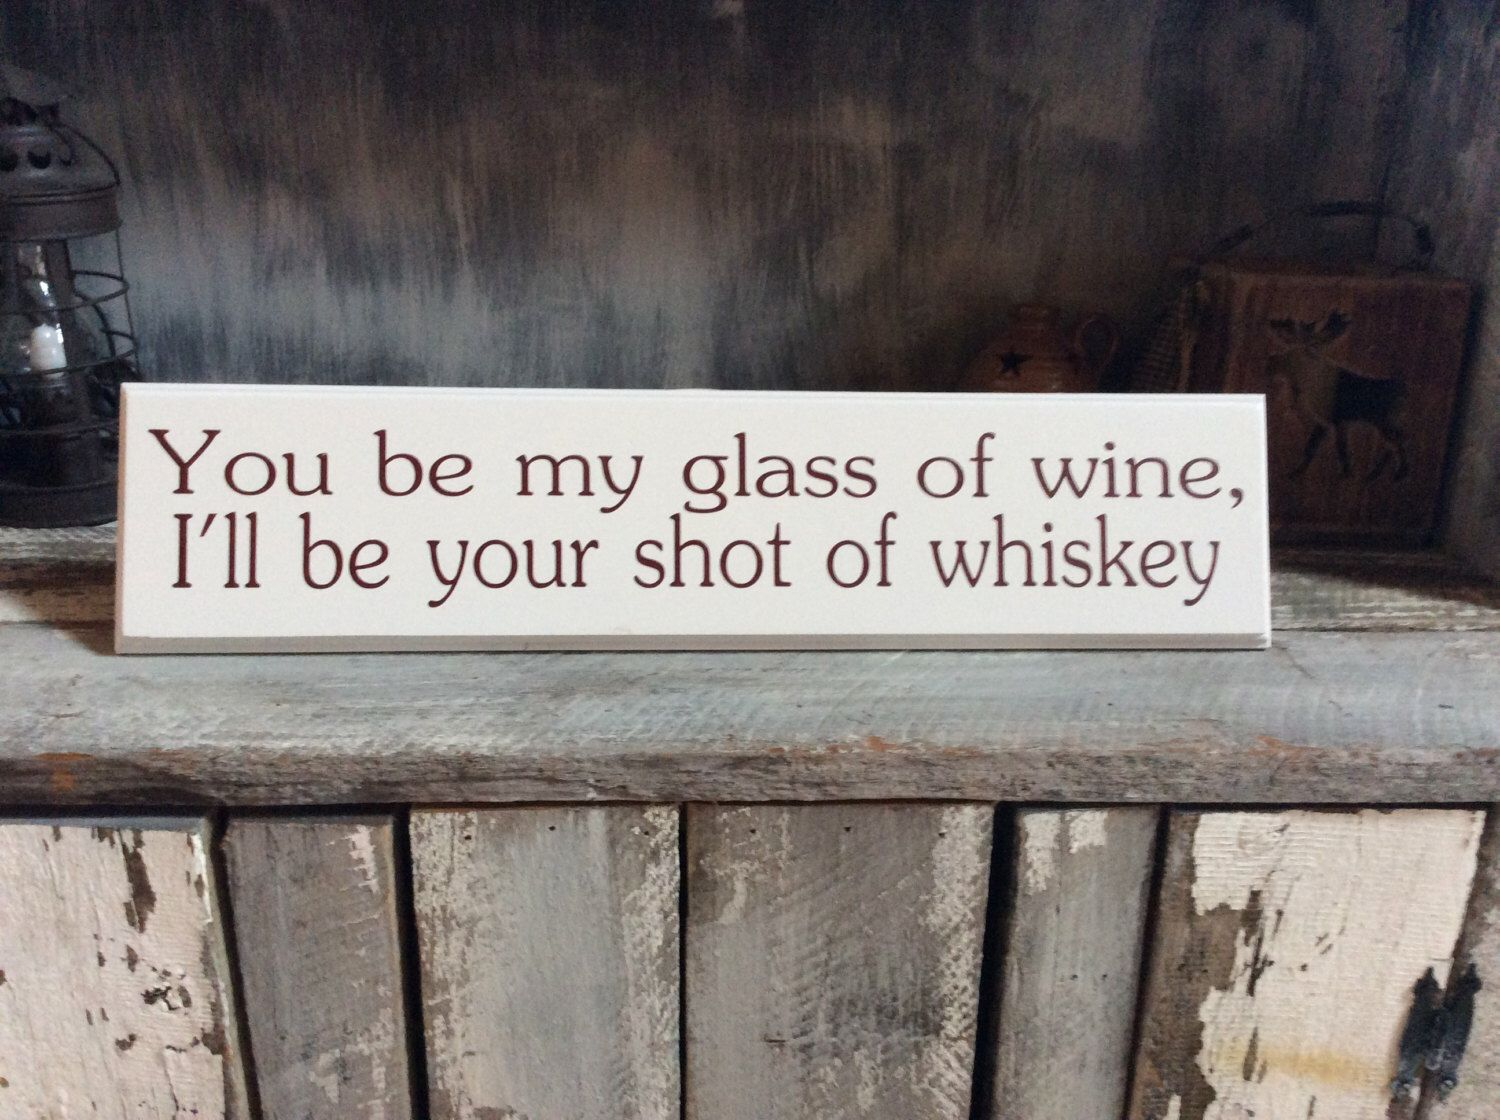 You be my glass of wine, I'll be your shot of whiskey by SimplyBluegrass on Etsy https://www.etsy.com/listing/267819218/you-be-my-glass-of-wine-ill-be-your-shot